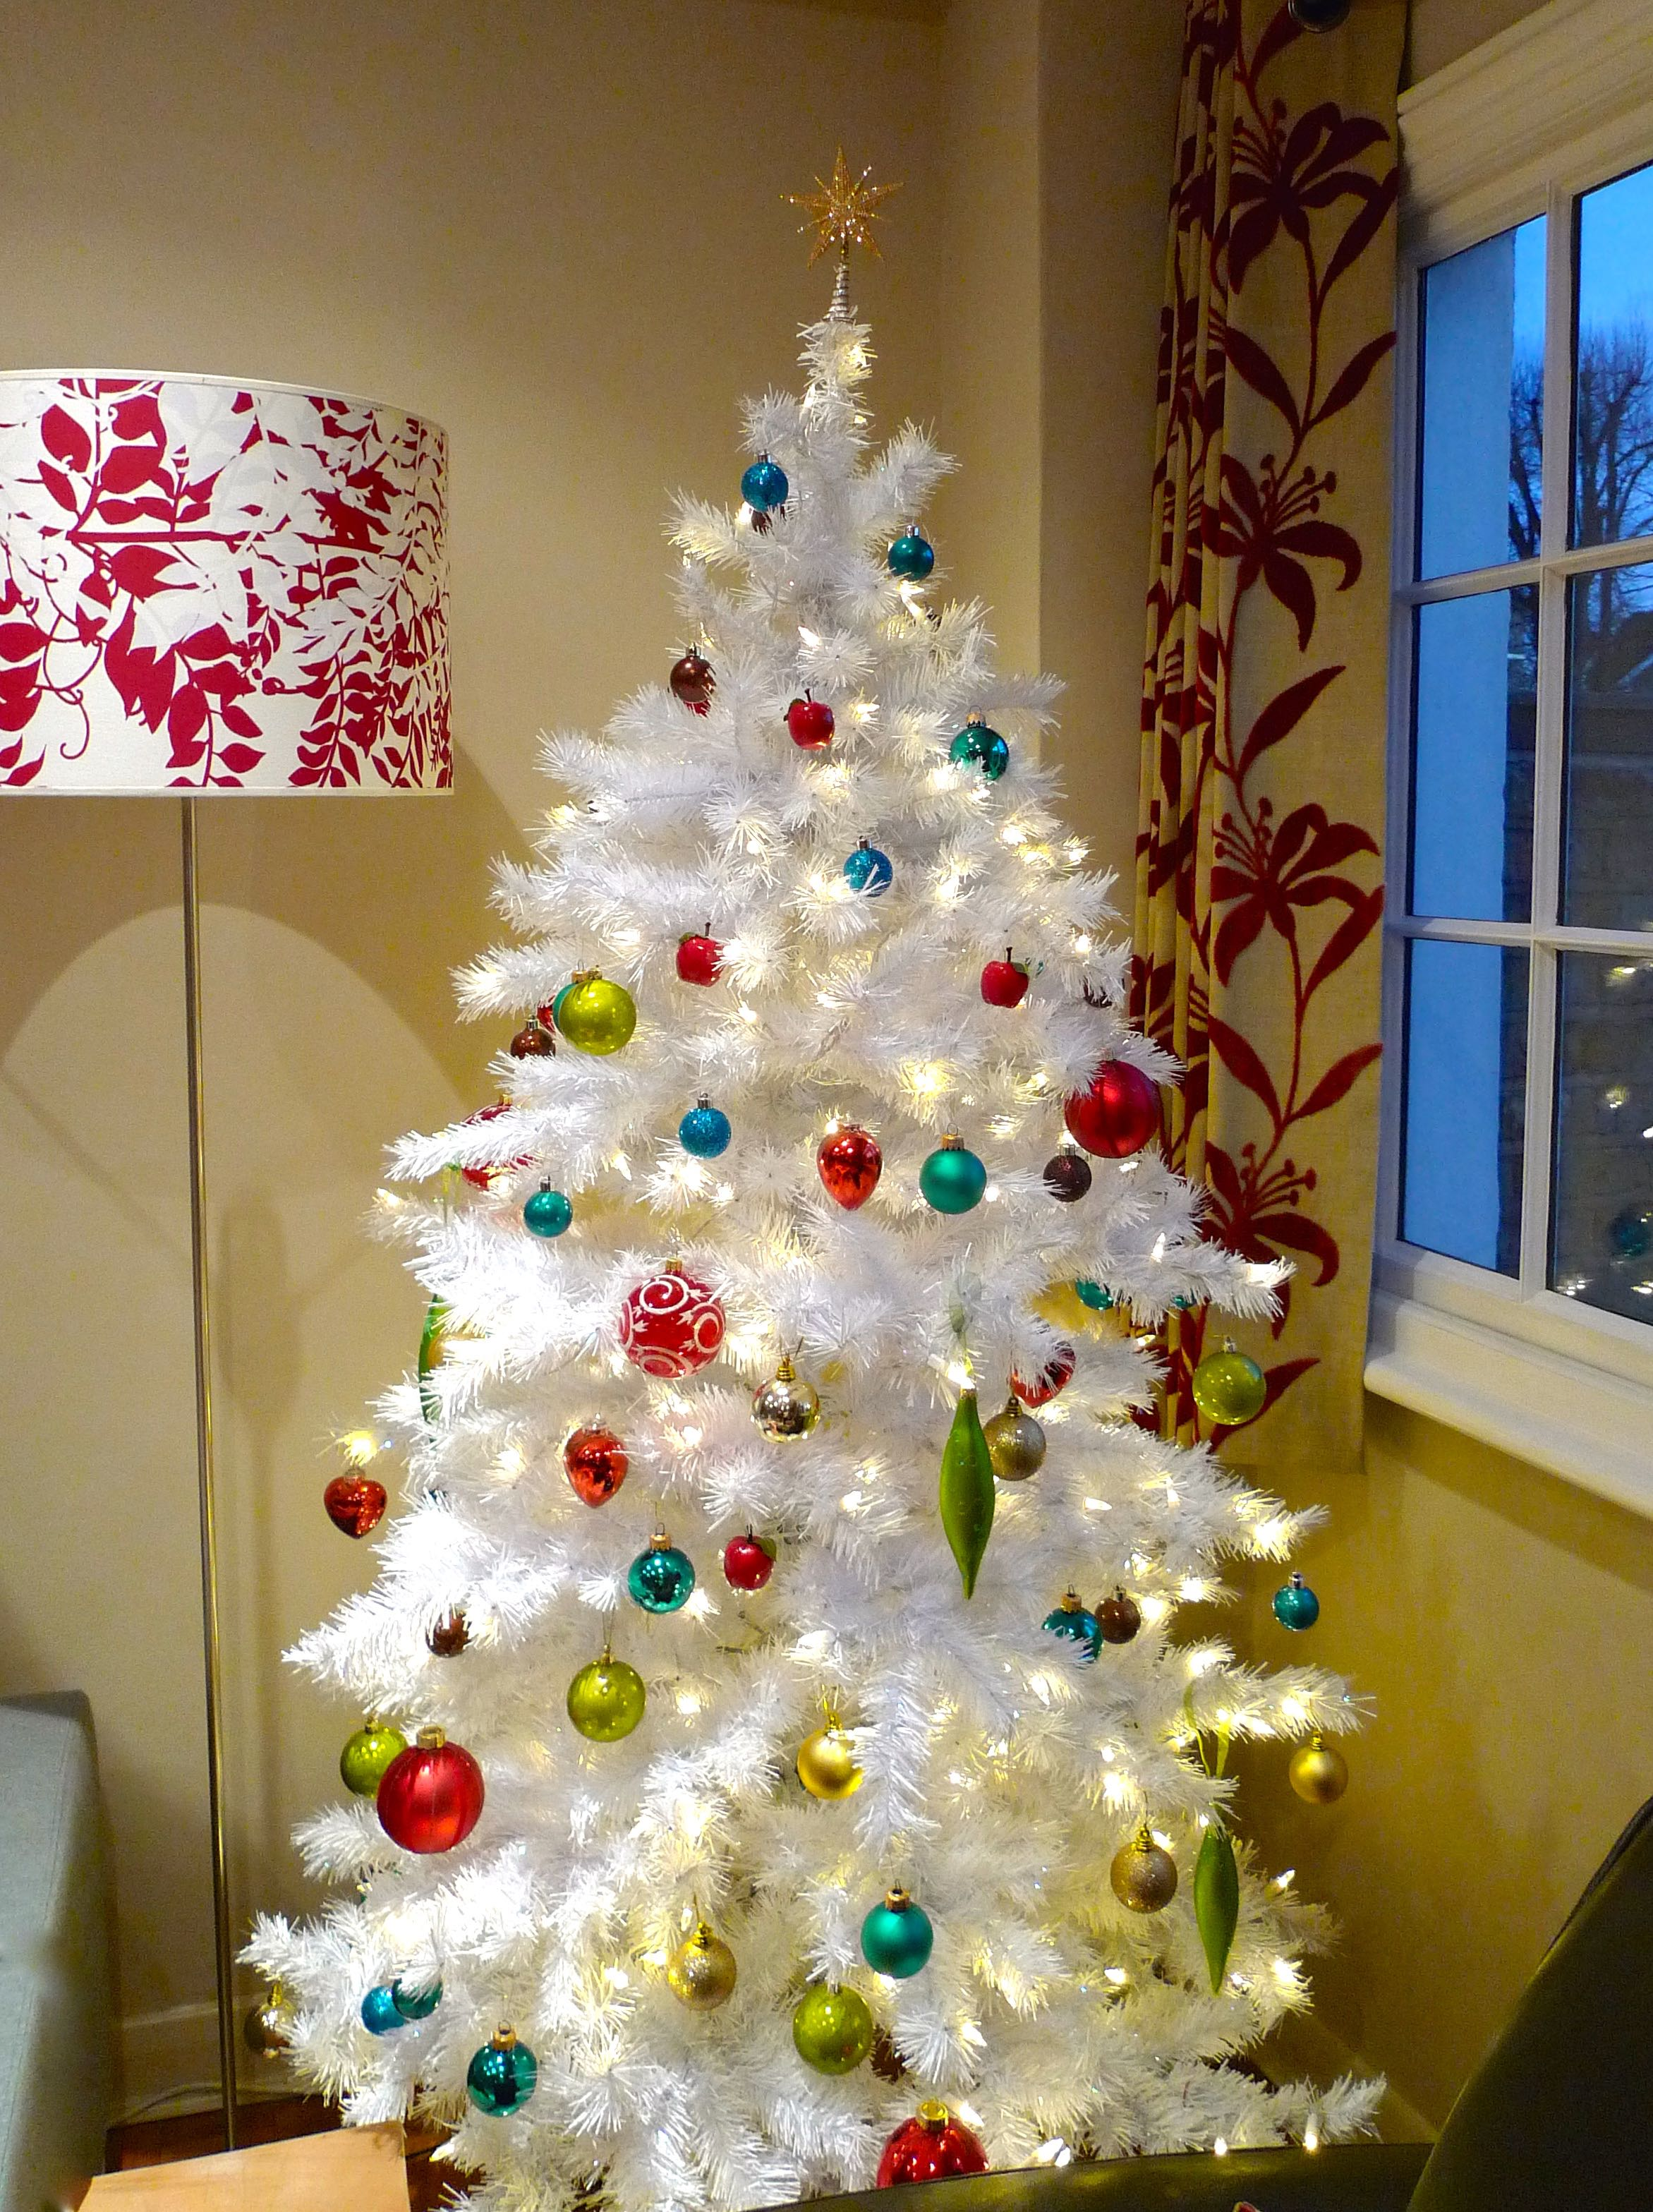 A FULL VIEW OF MY JEWEL COVERED TREE